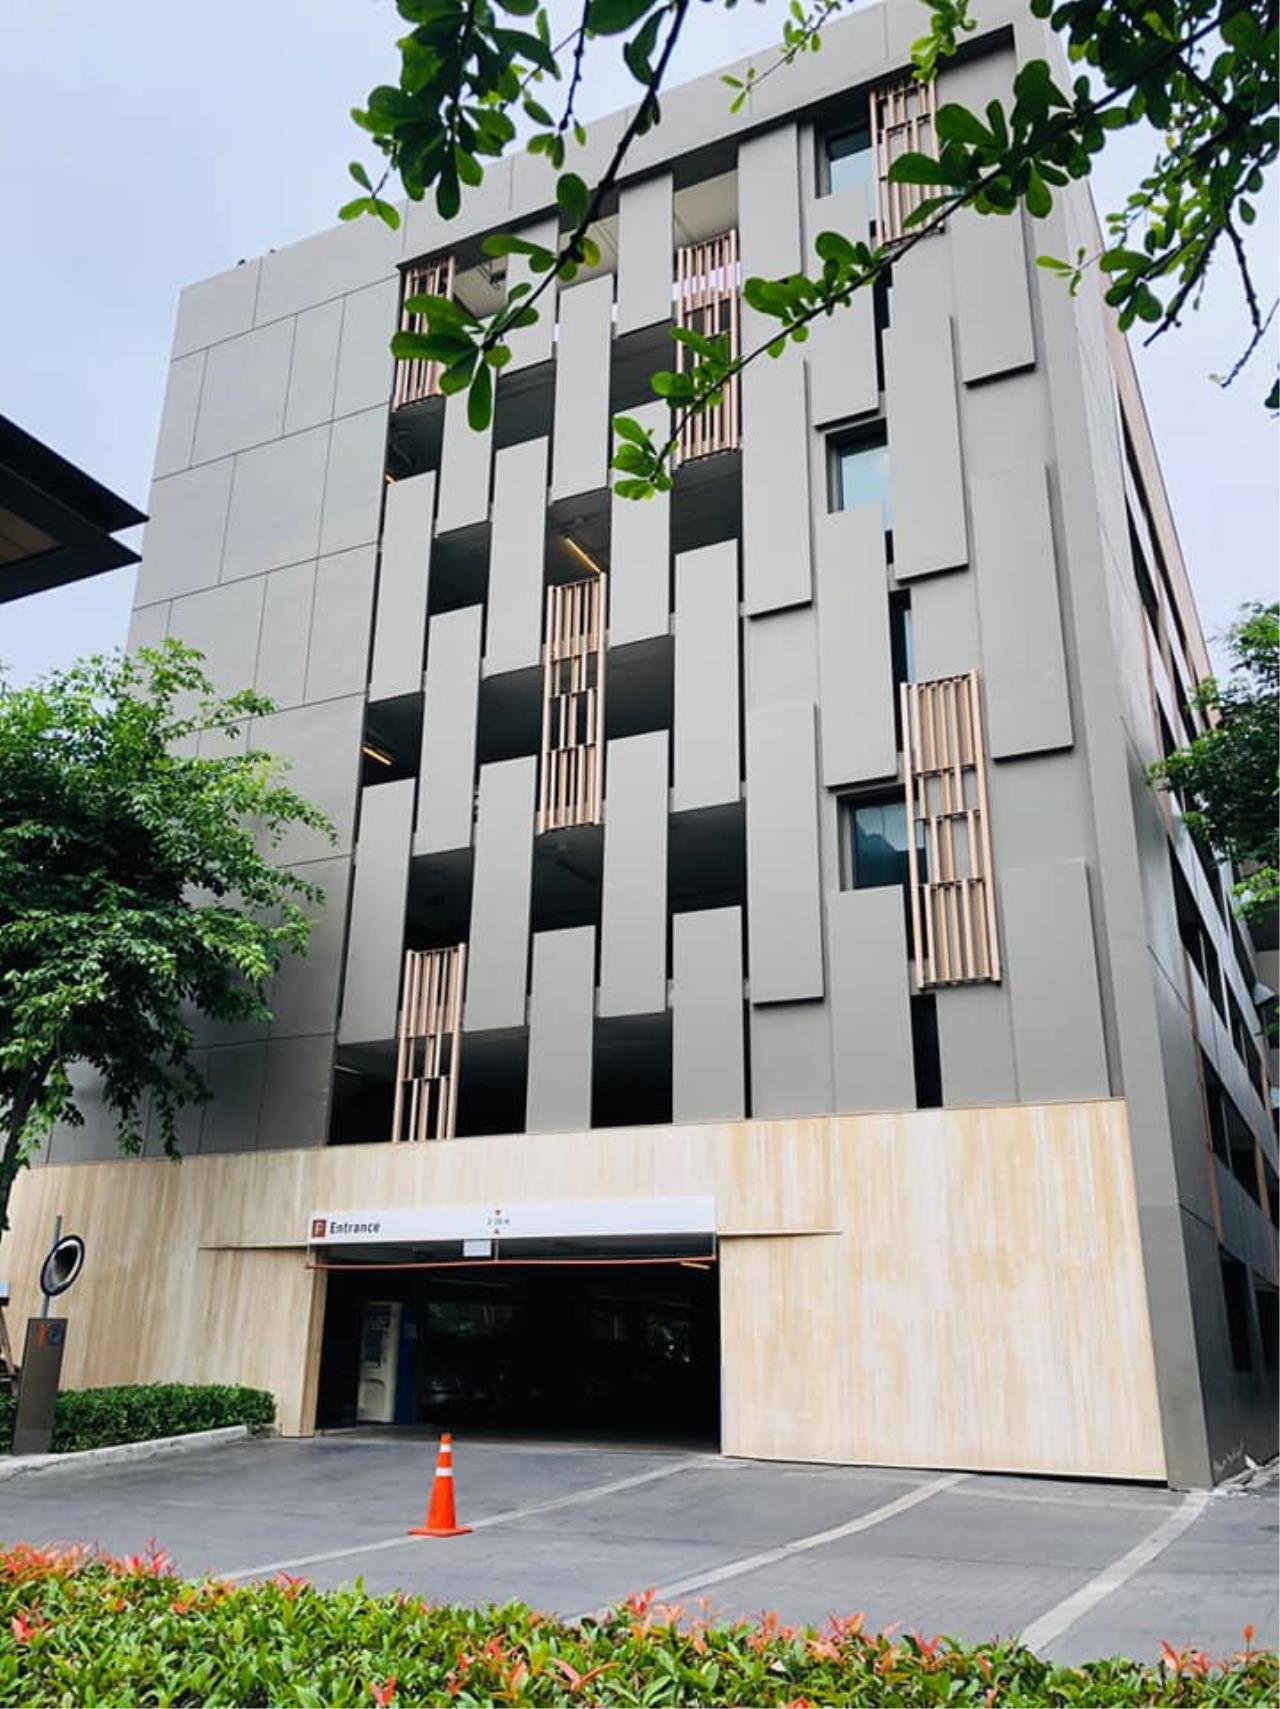 Agent - Prombood Agency's Sale - For Rent 1 Bedroom (Corner Unit) 31.95 sq.m. The Key Sathorn-Ratchapruek near Wutthakat BTS Station 16